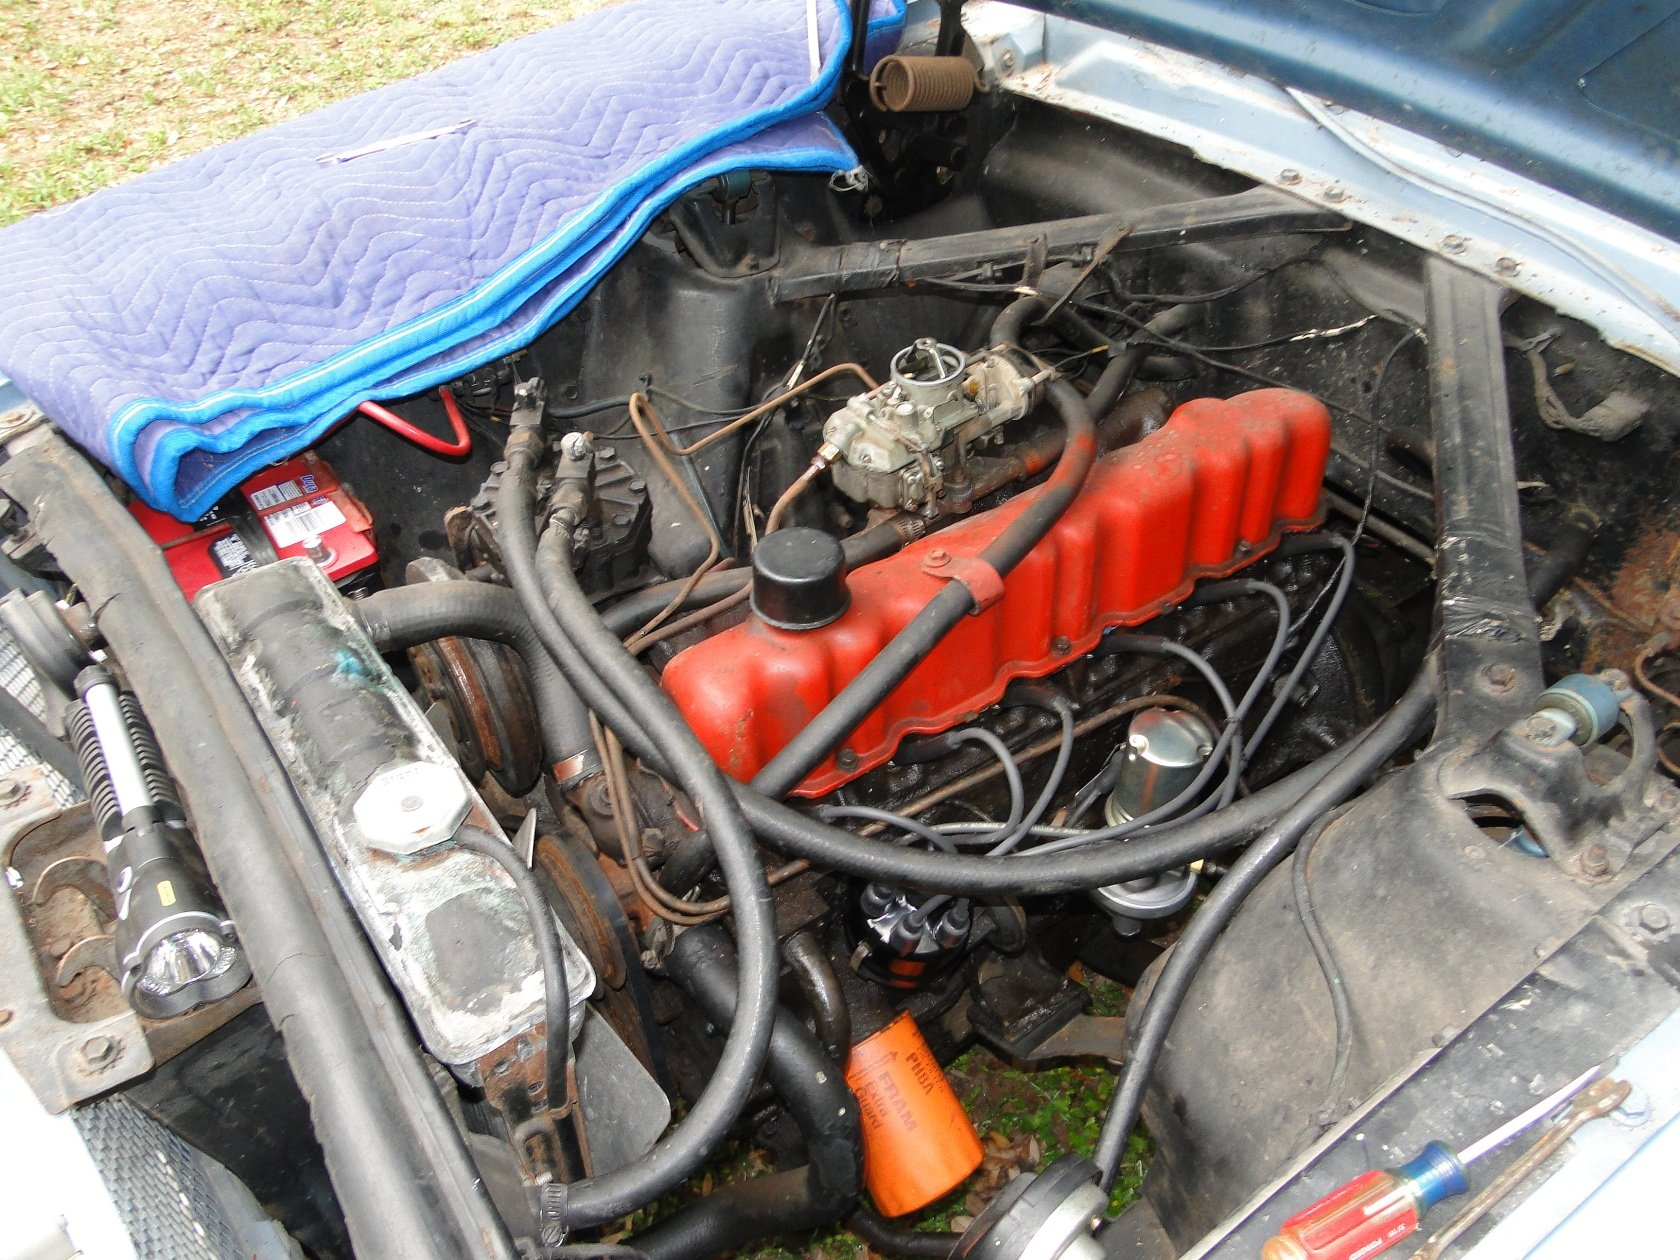 1966 Mustang Convertible Wiring Diagram Vacuum Lines Hoses Locations 65 200 Ci Ford Mustang Forum